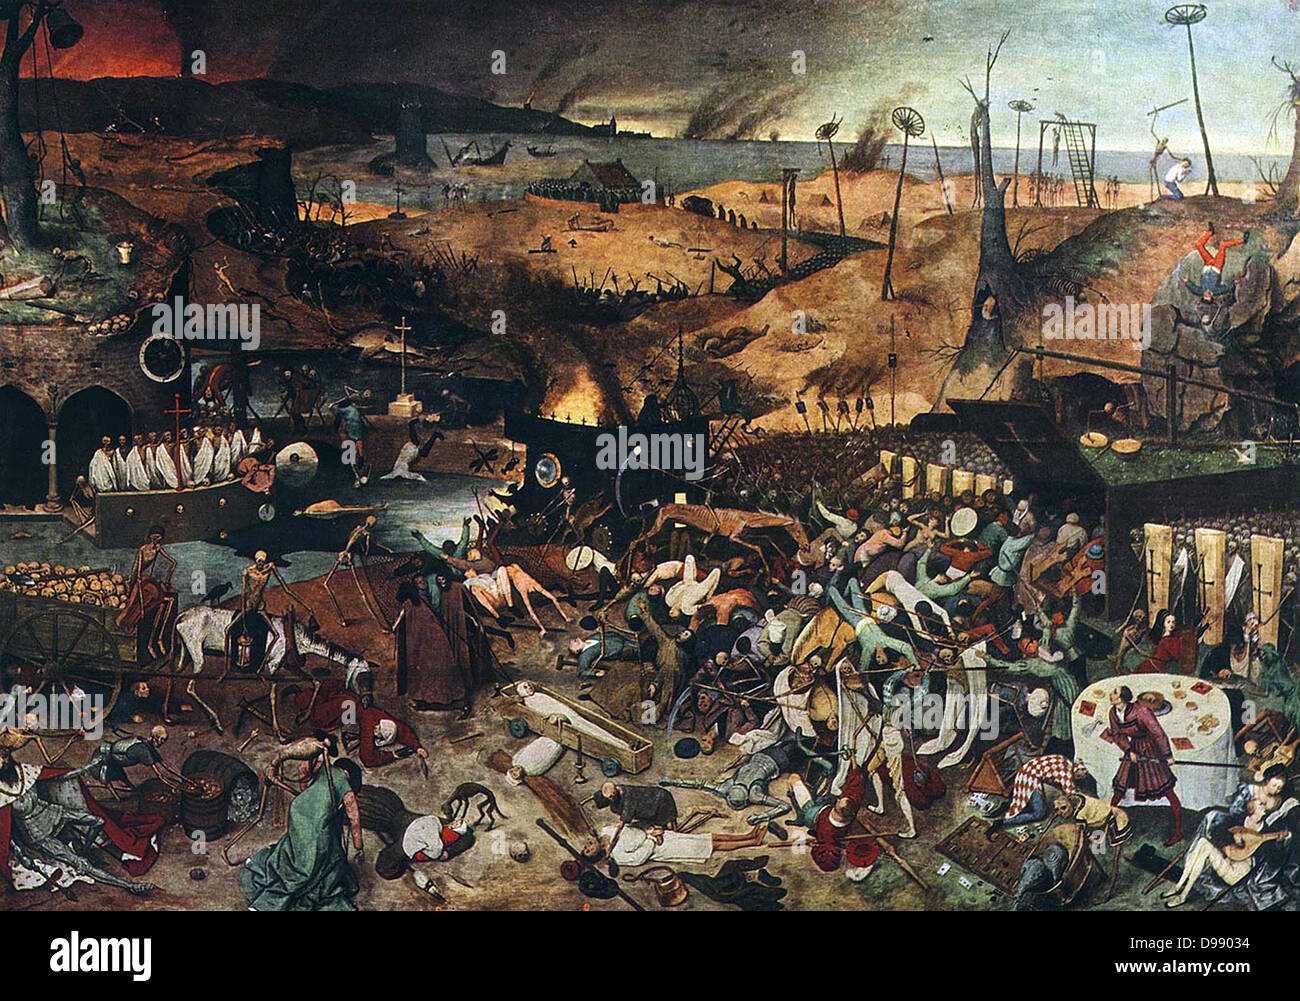 The Triumph of Death is an oil on panel, approximately 117 by 162 centimeters (46 x 63.8 in), painted c. 1562 by - Stock Image